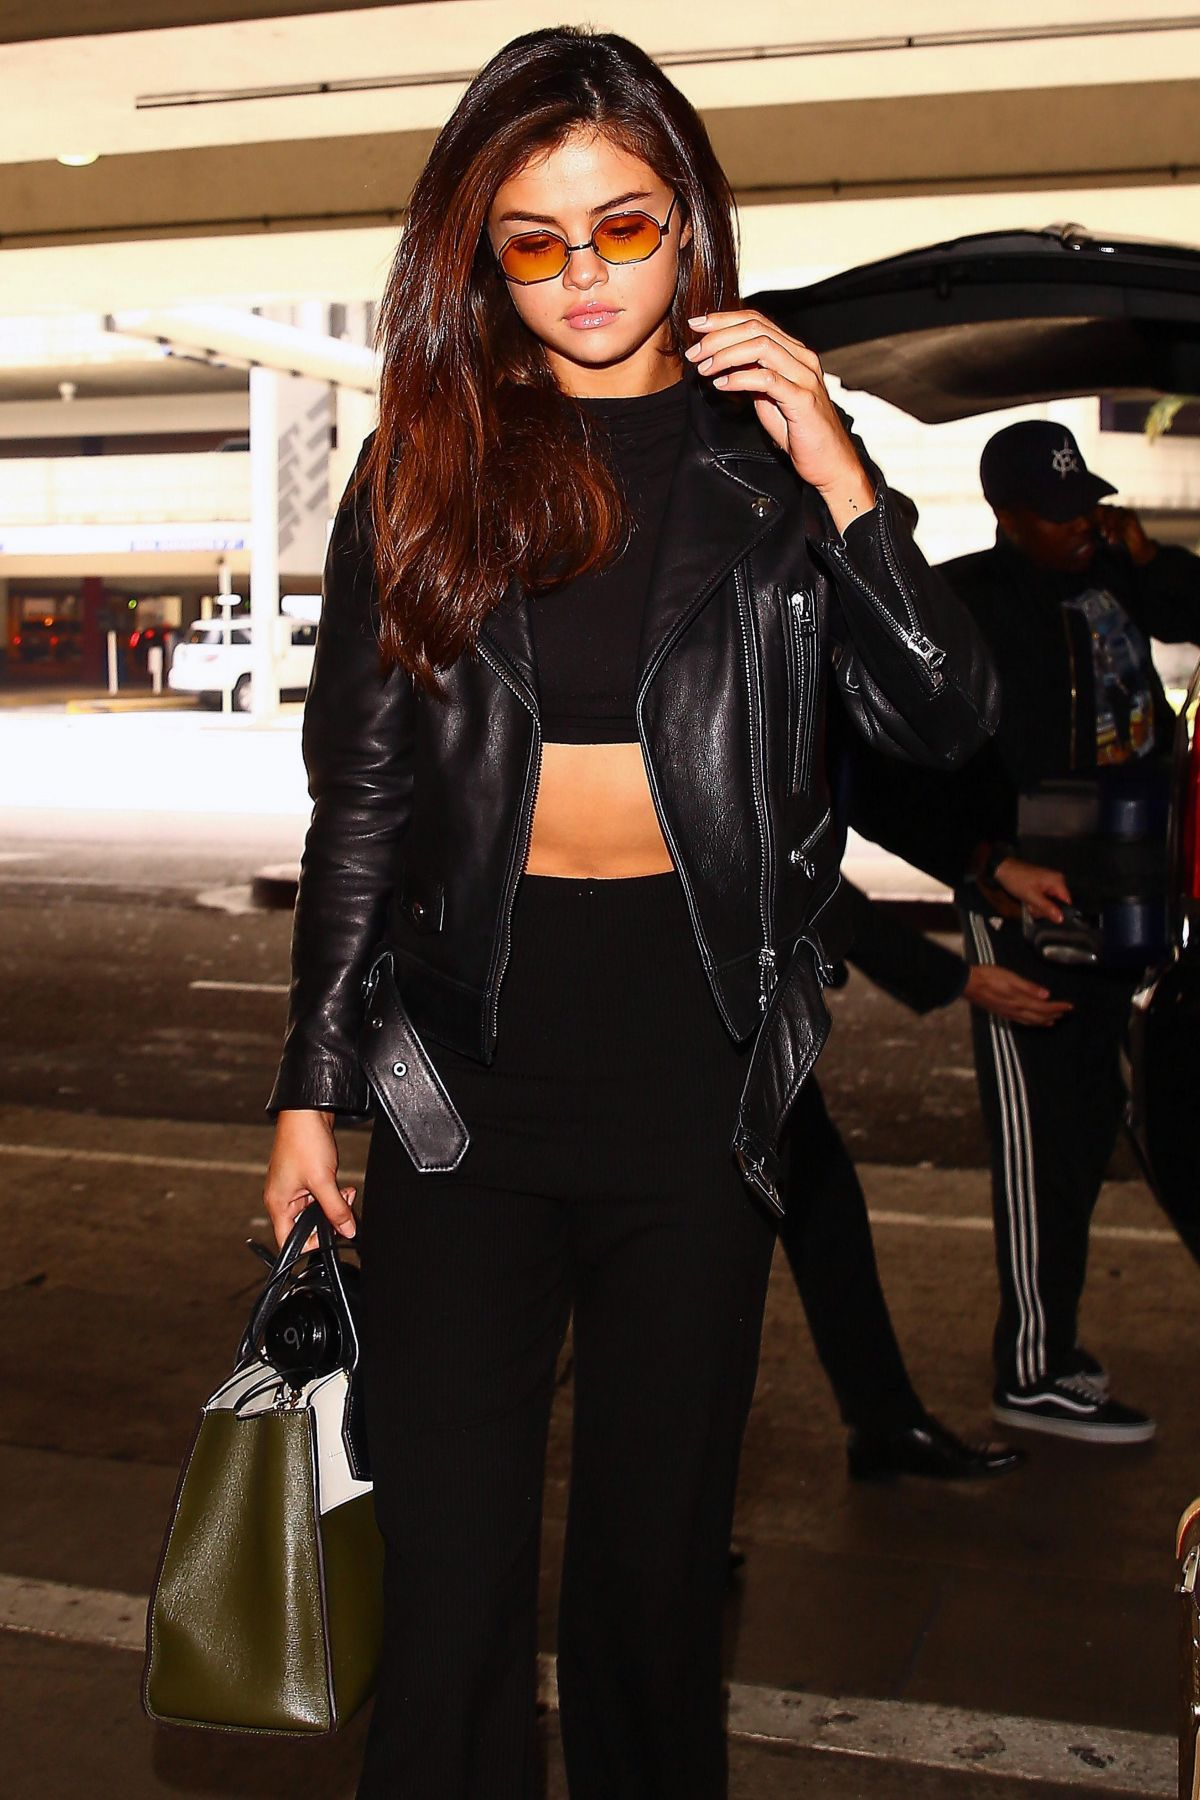 SELENA GOMEZ at Los Angeles International Airport 06/02/2017